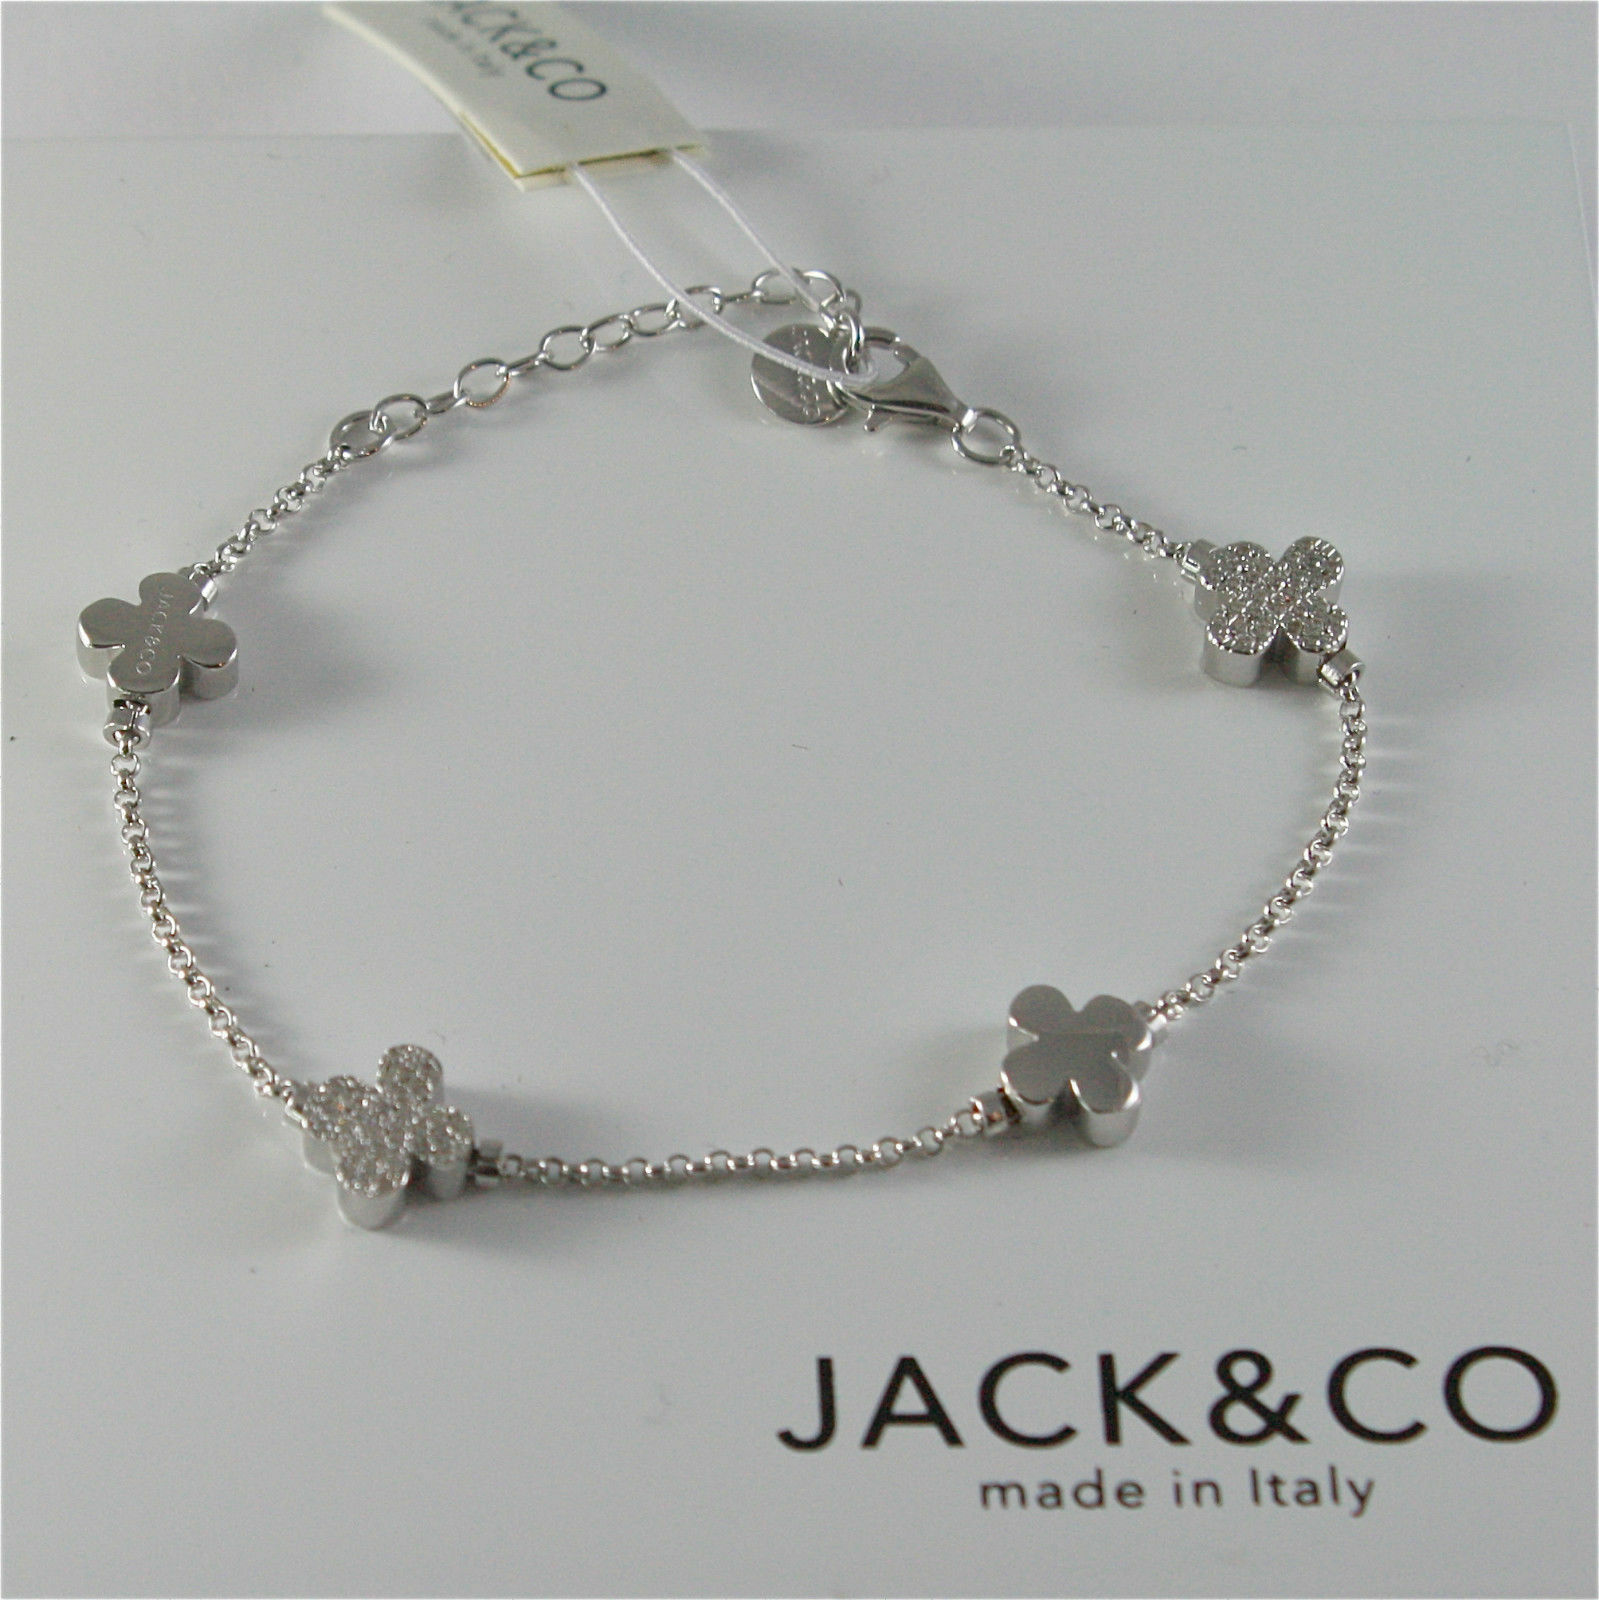 Silver Bracelet 925 Jack&co with Four-Leaf Clover and Zircon Cubic JCB0742